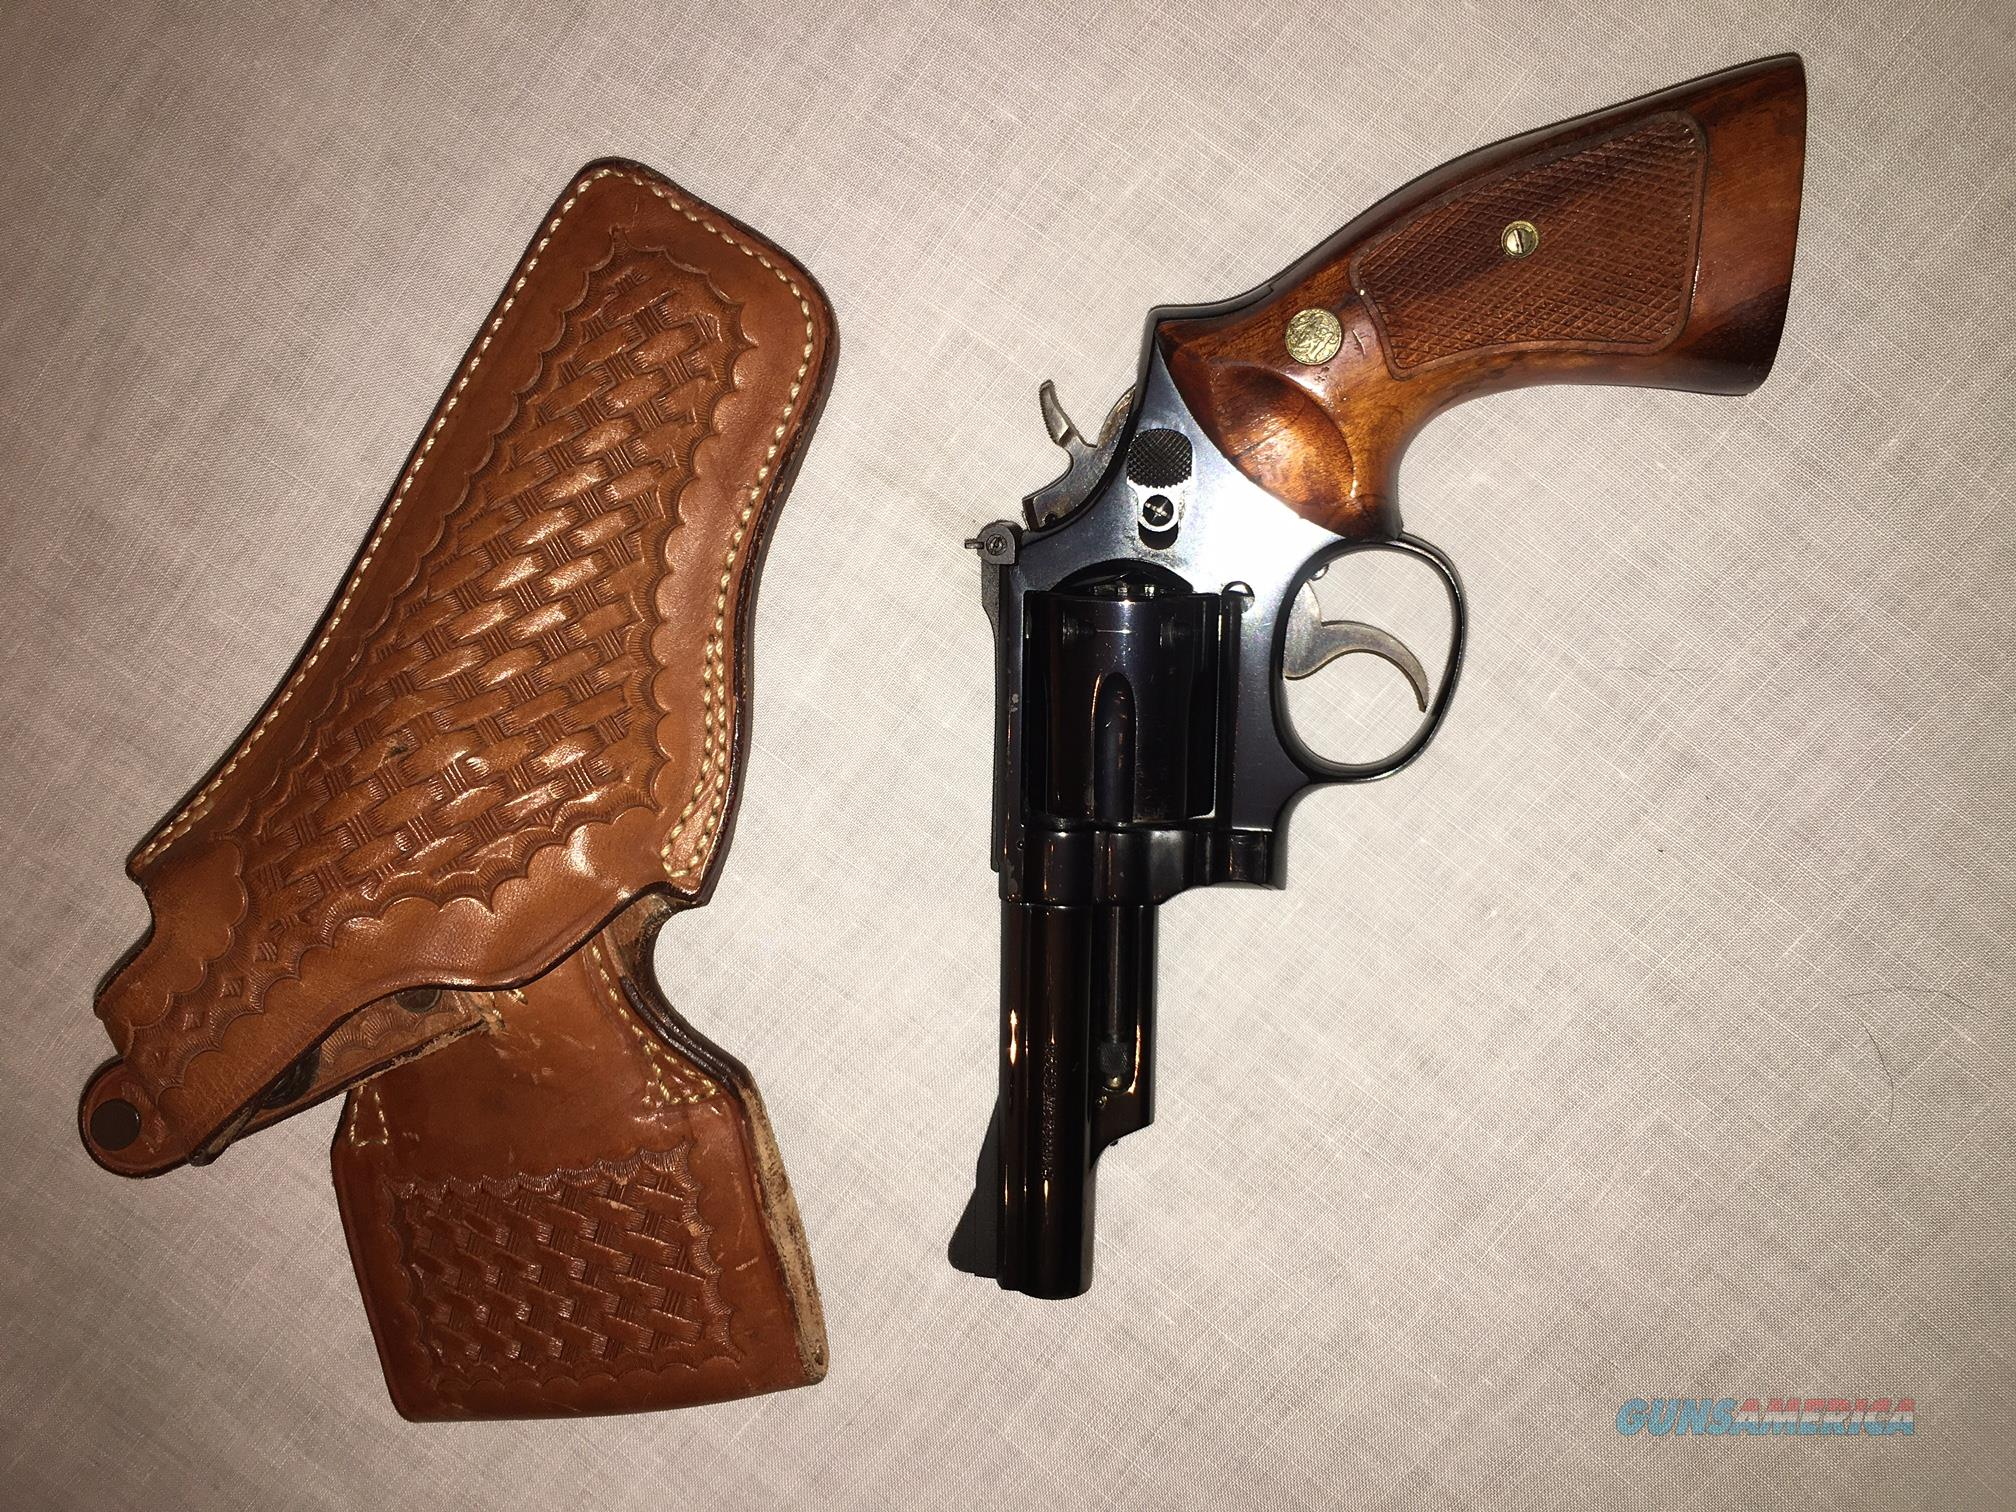 Smith & Wesson Model 19-4 357 Magnum with Leather Holster  Guns > Pistols > Smith & Wesson Revolvers > Full Frame Revolver